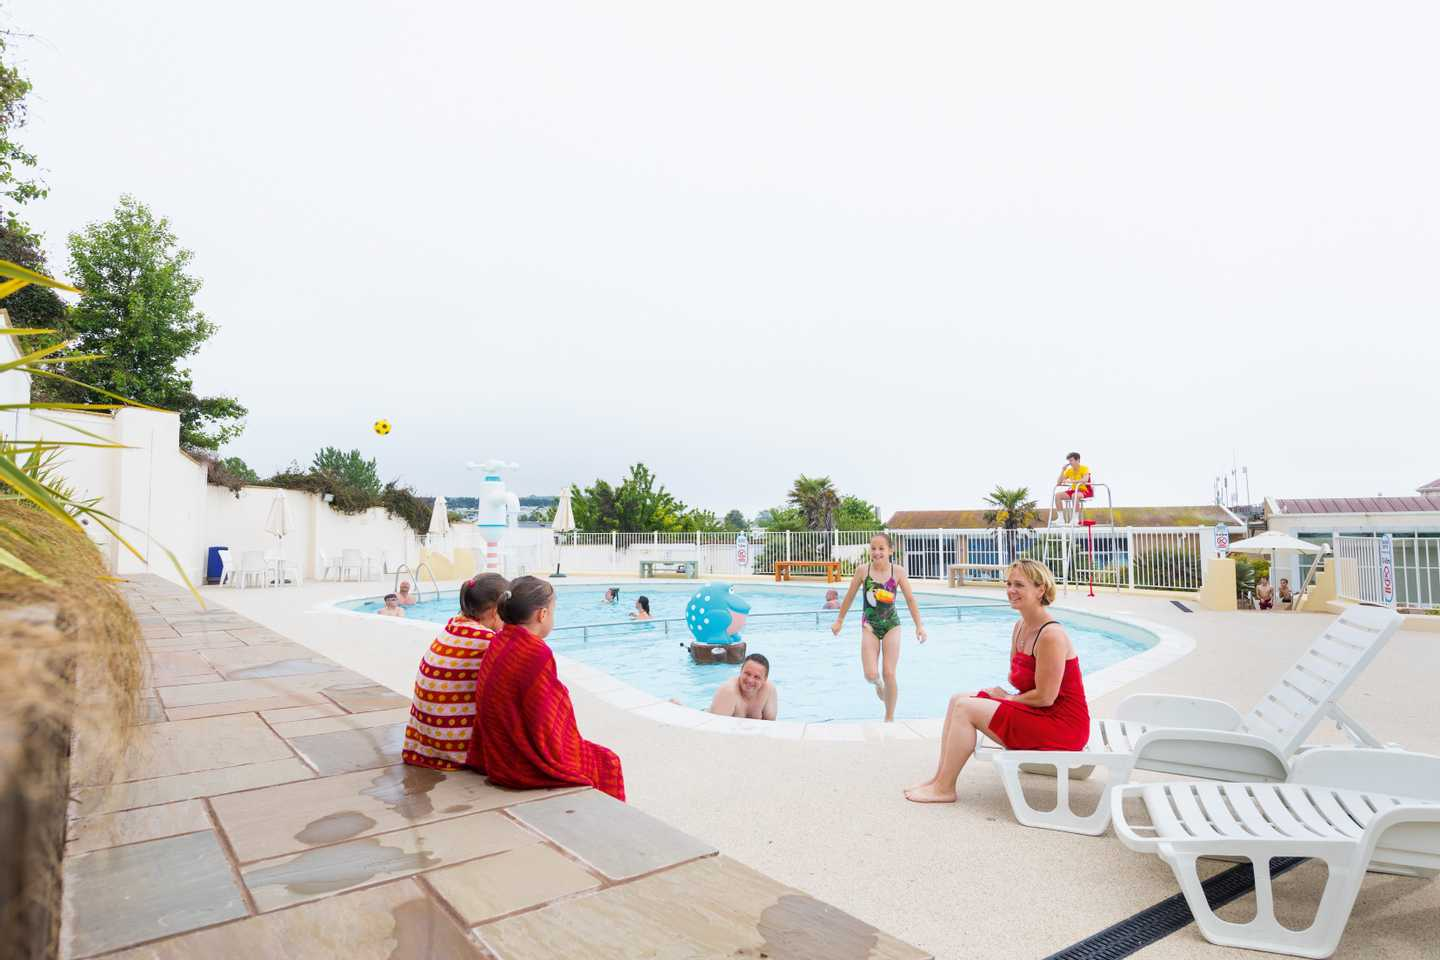 Families enjoying the outdoor pool at Devon Cliffs Holiday Park